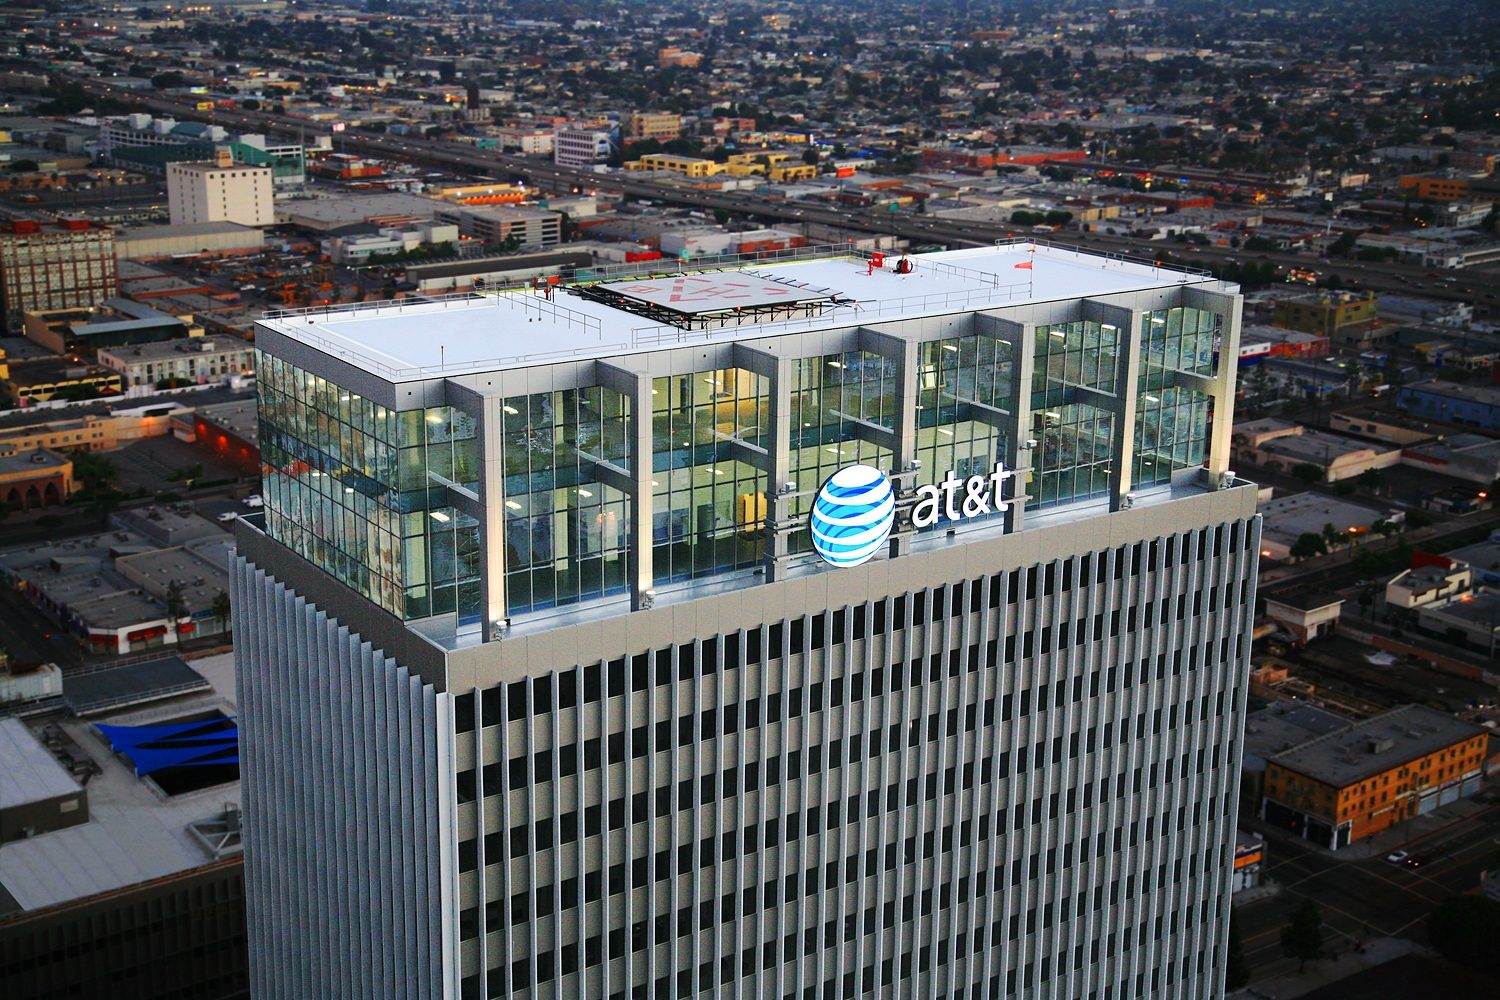 MATT construction AT&T Tower Penthouse Exterior Aerial View